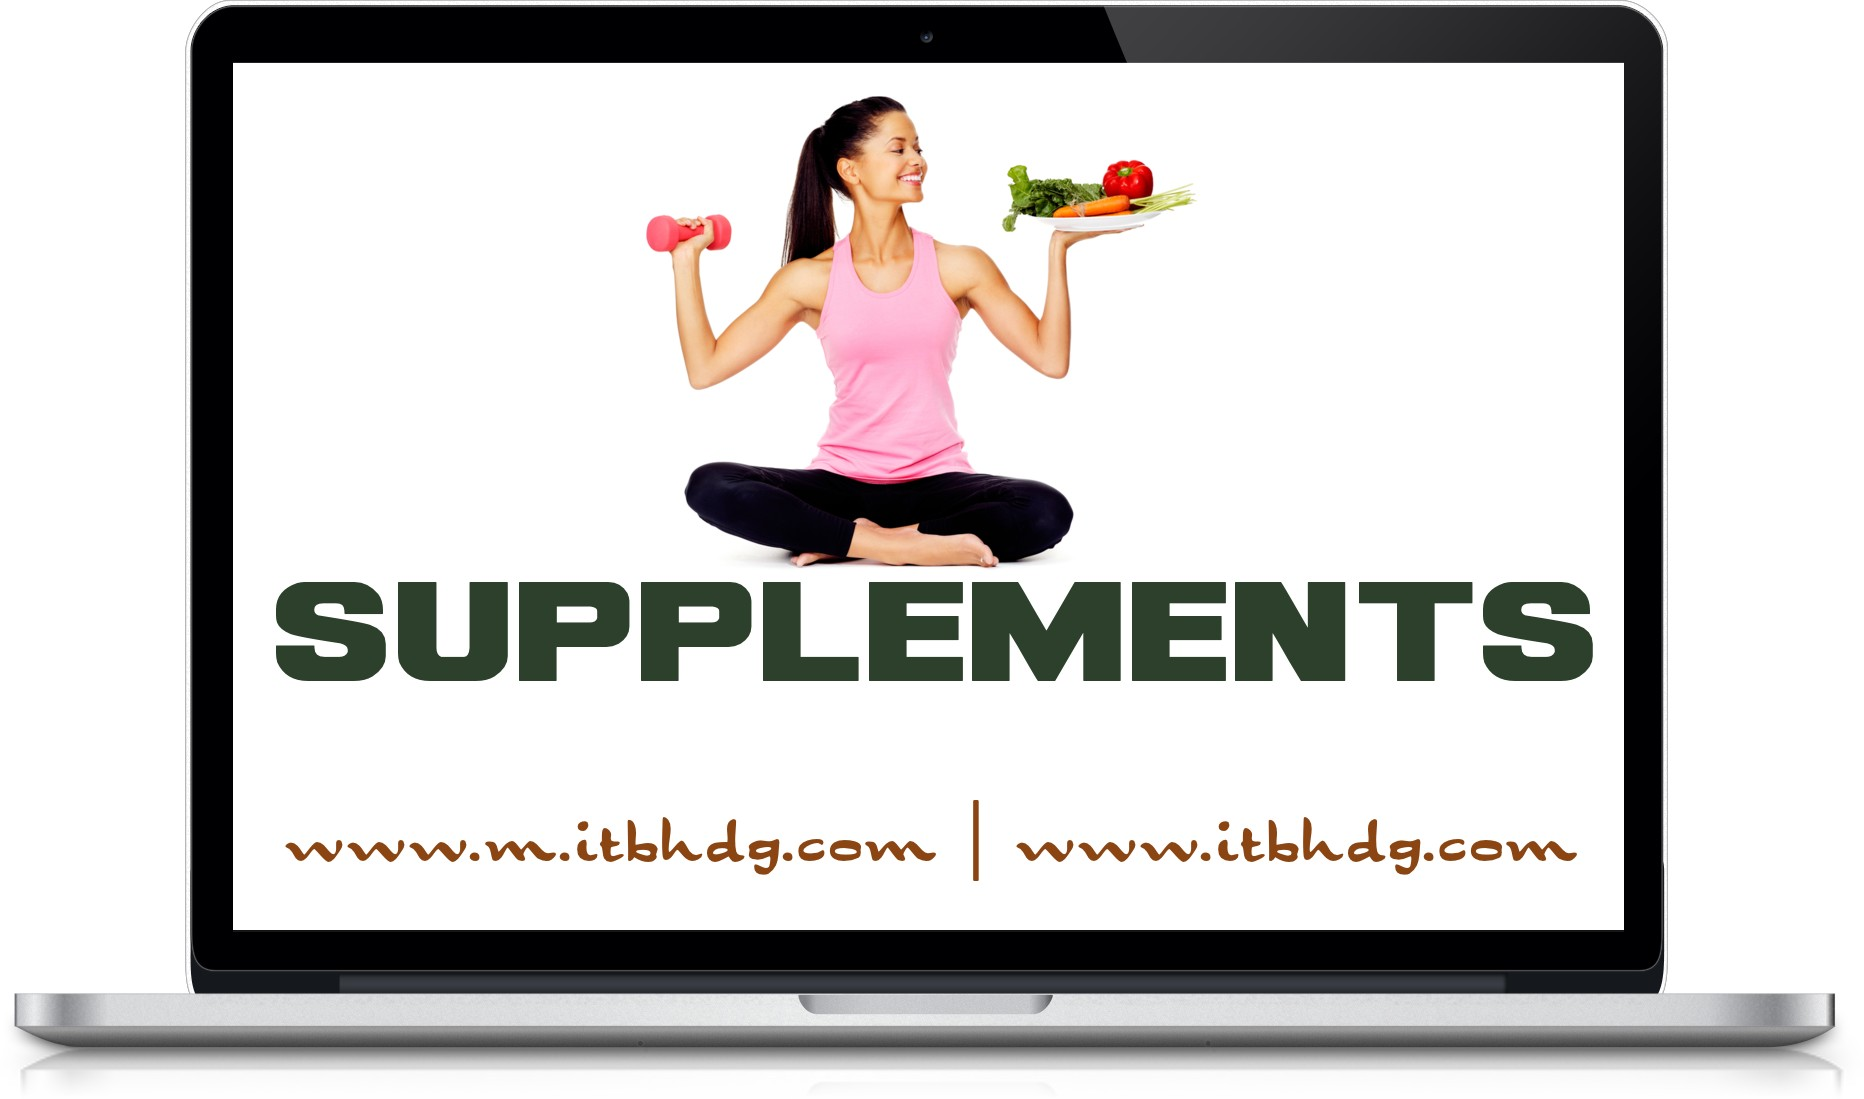 FDA Registration | BIENNIAL RENEWAL | DIETARY SUPPLEMENTS COMPANY | CLICK & SAVE 75% | www.m.itbhdg.com | www.itbhdg.com